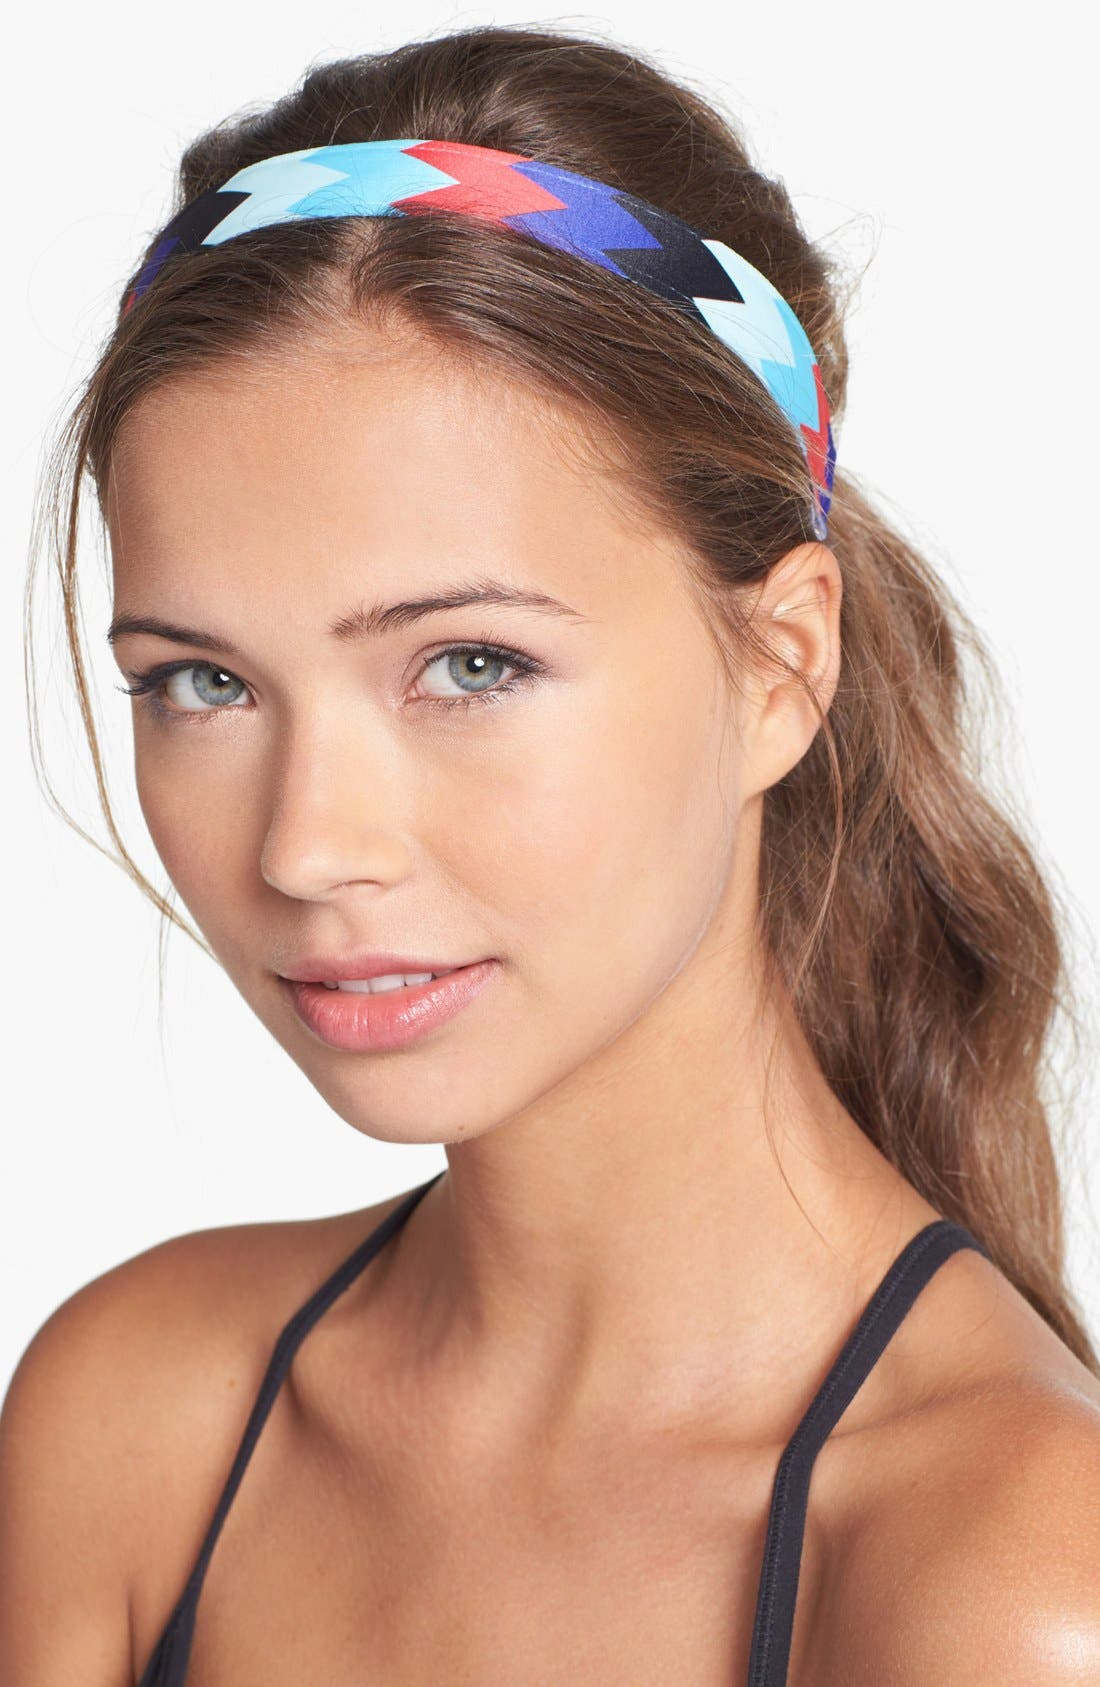 Alternate Image 1 Selected - Sweaty Bands 'Chevron Shuffle' Head Wrap